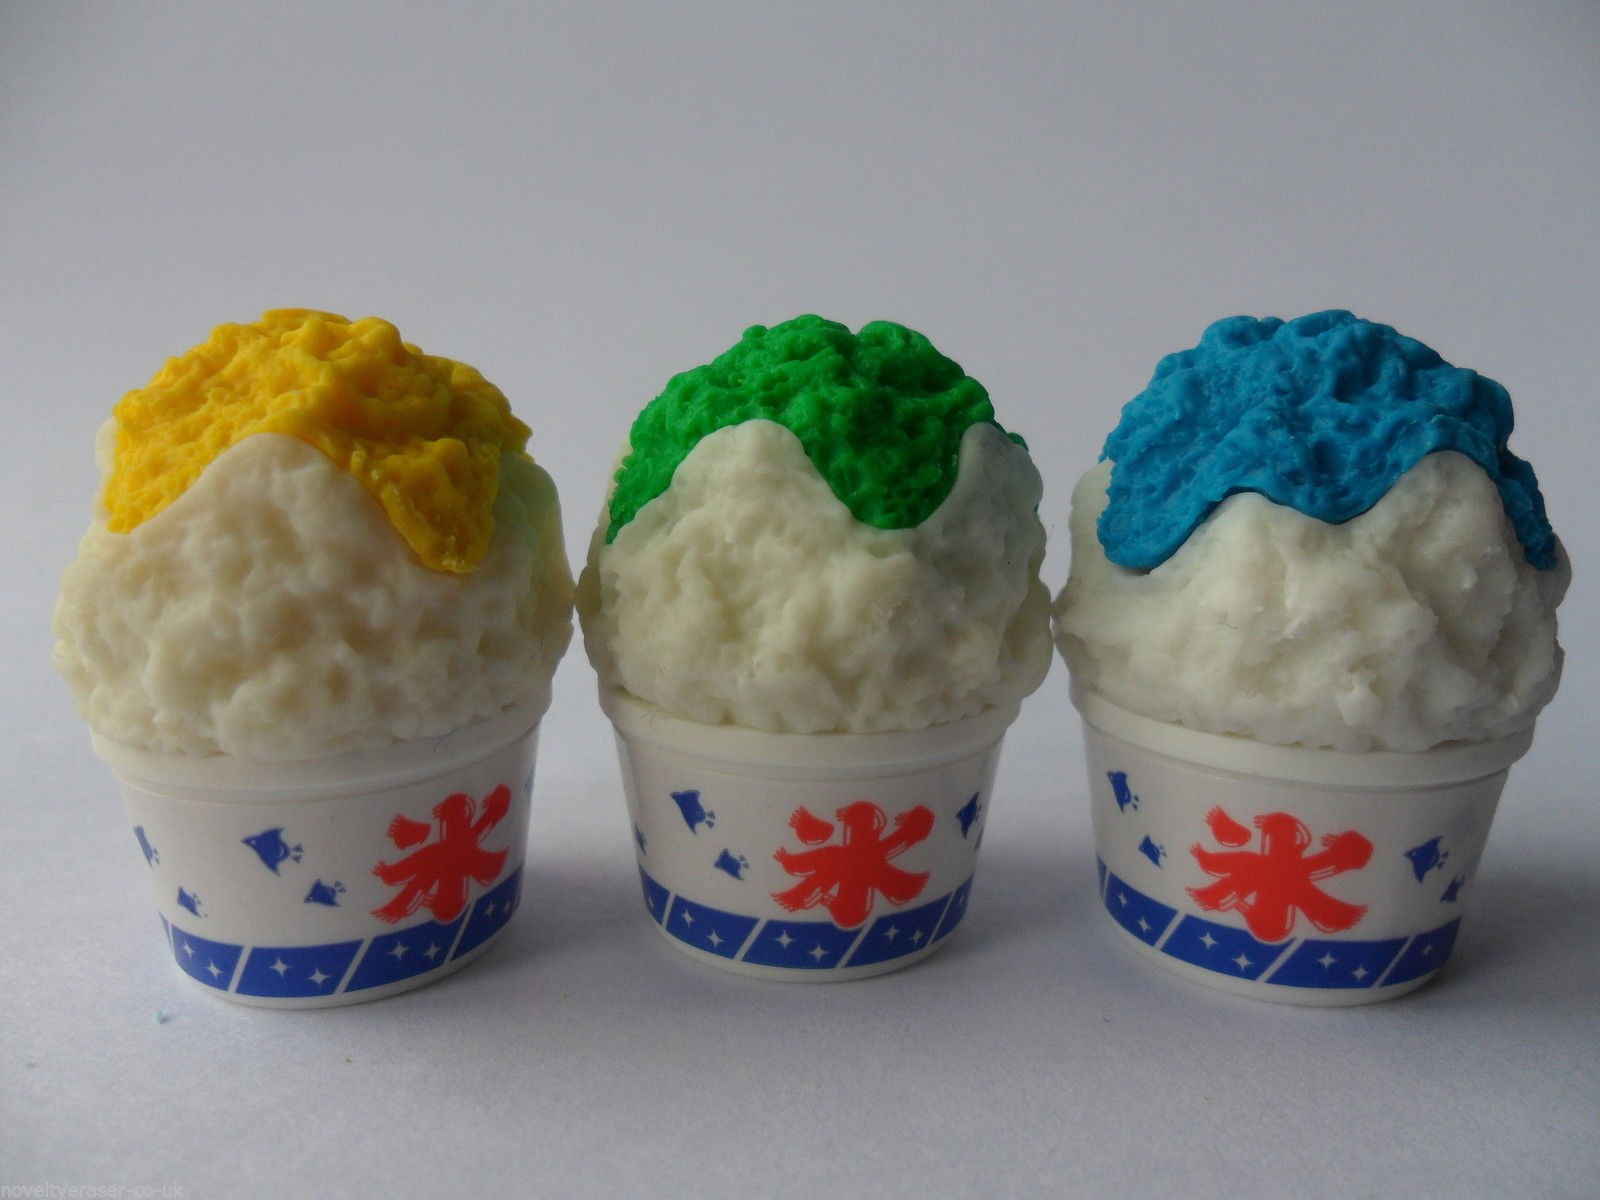 Iwako 3 Colour Topping Shaved Ice Japanese Erasers (3 pieces)